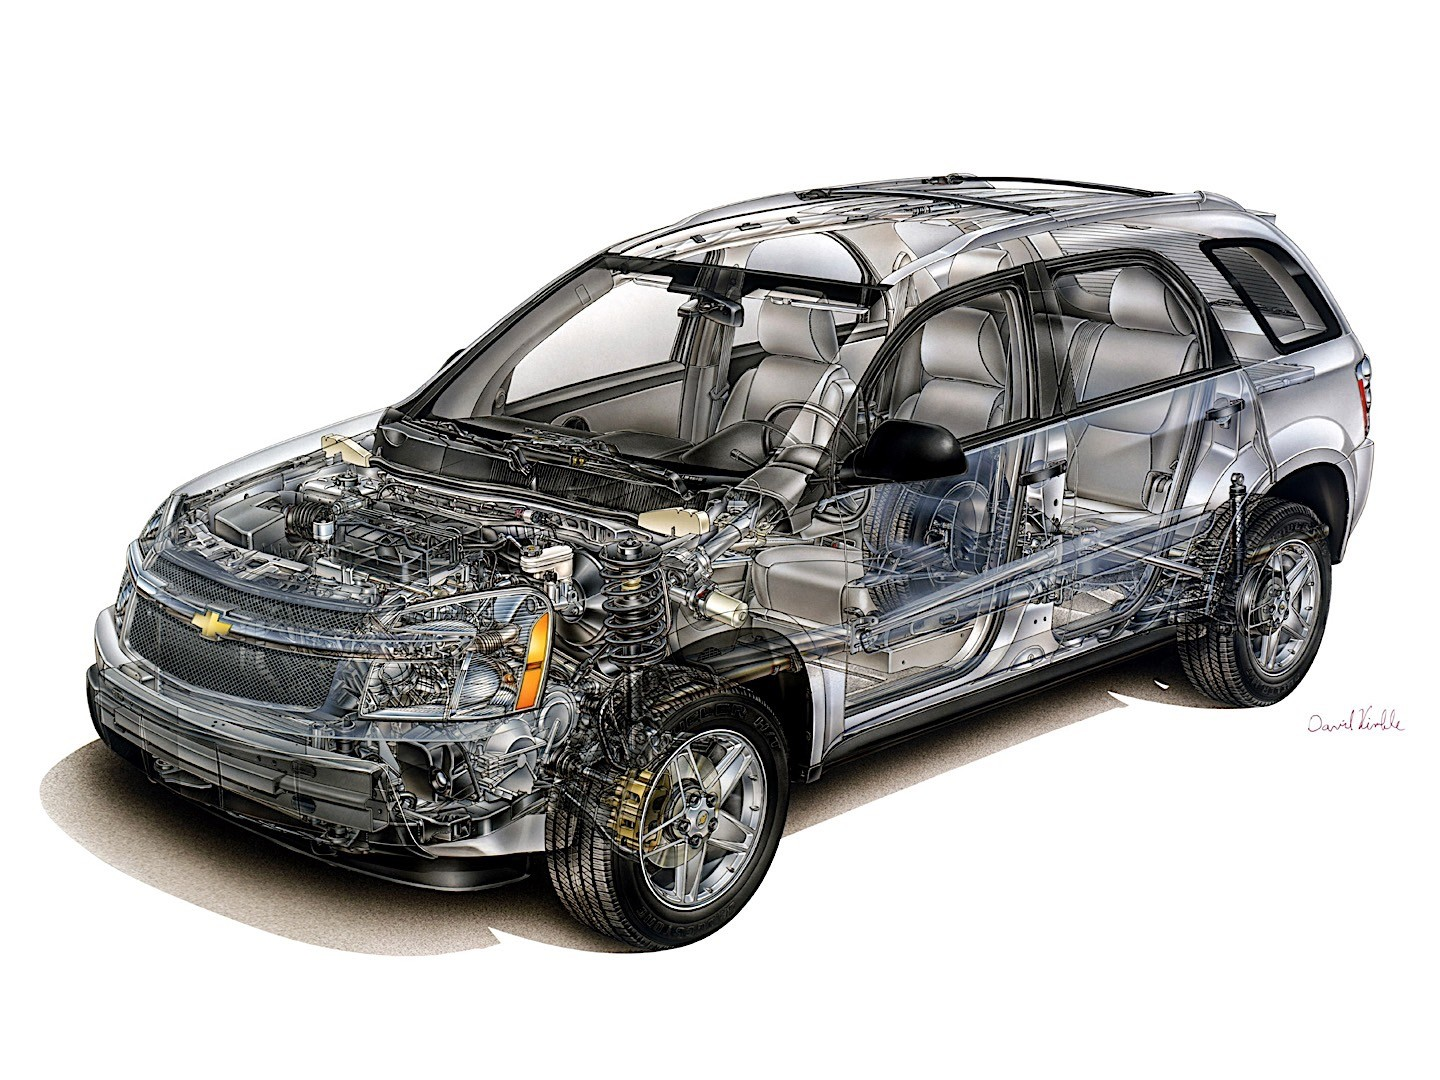 chevrolet equinox specs  u0026 photos - 2004  2005  2006  2007  2008  2009